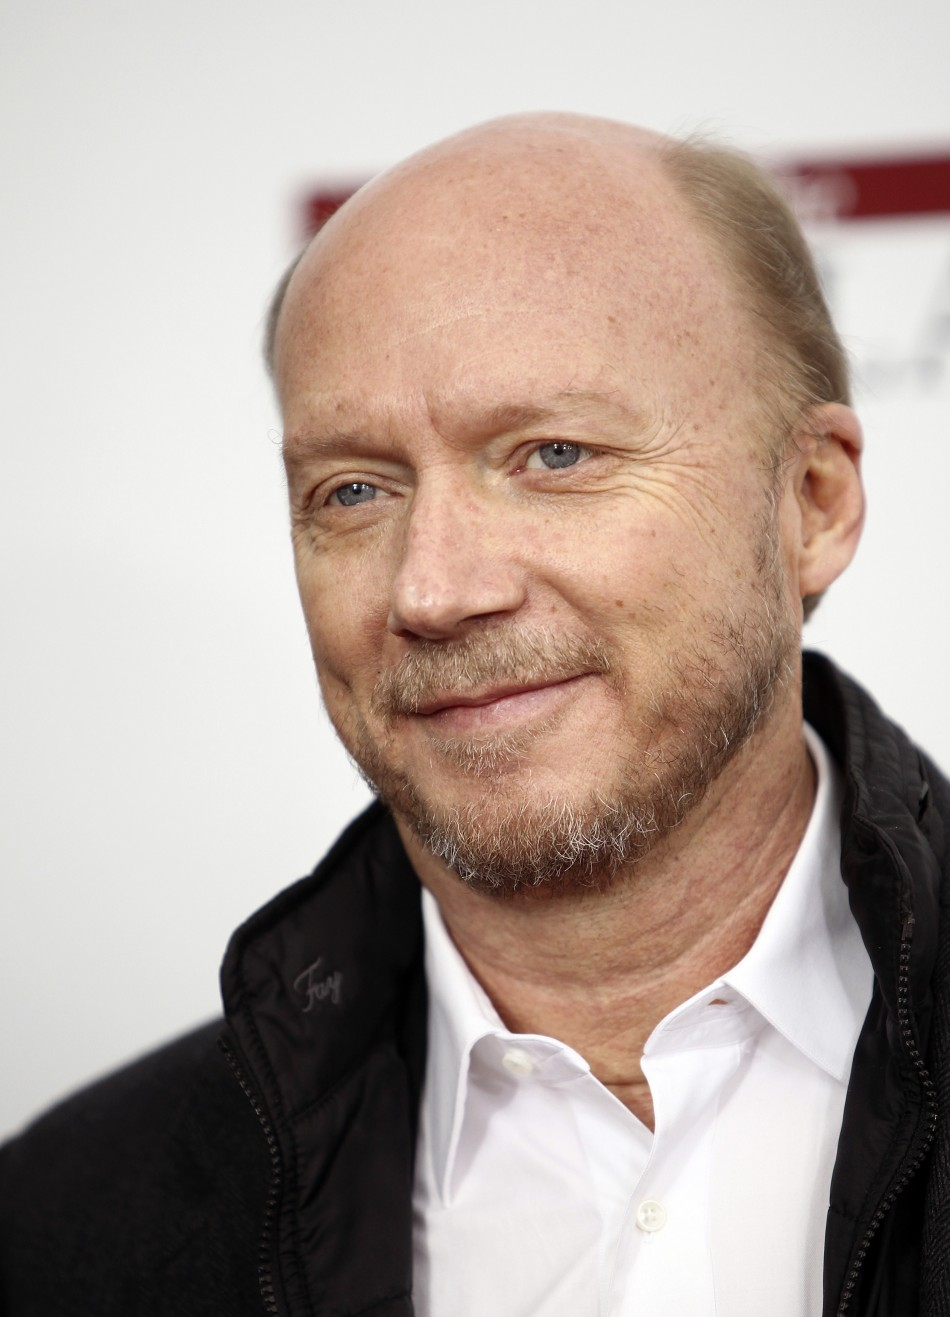 """Paul Haggis, a director, arrives for the New York premiere of the film """"The Iron Lady"""" in New York"""